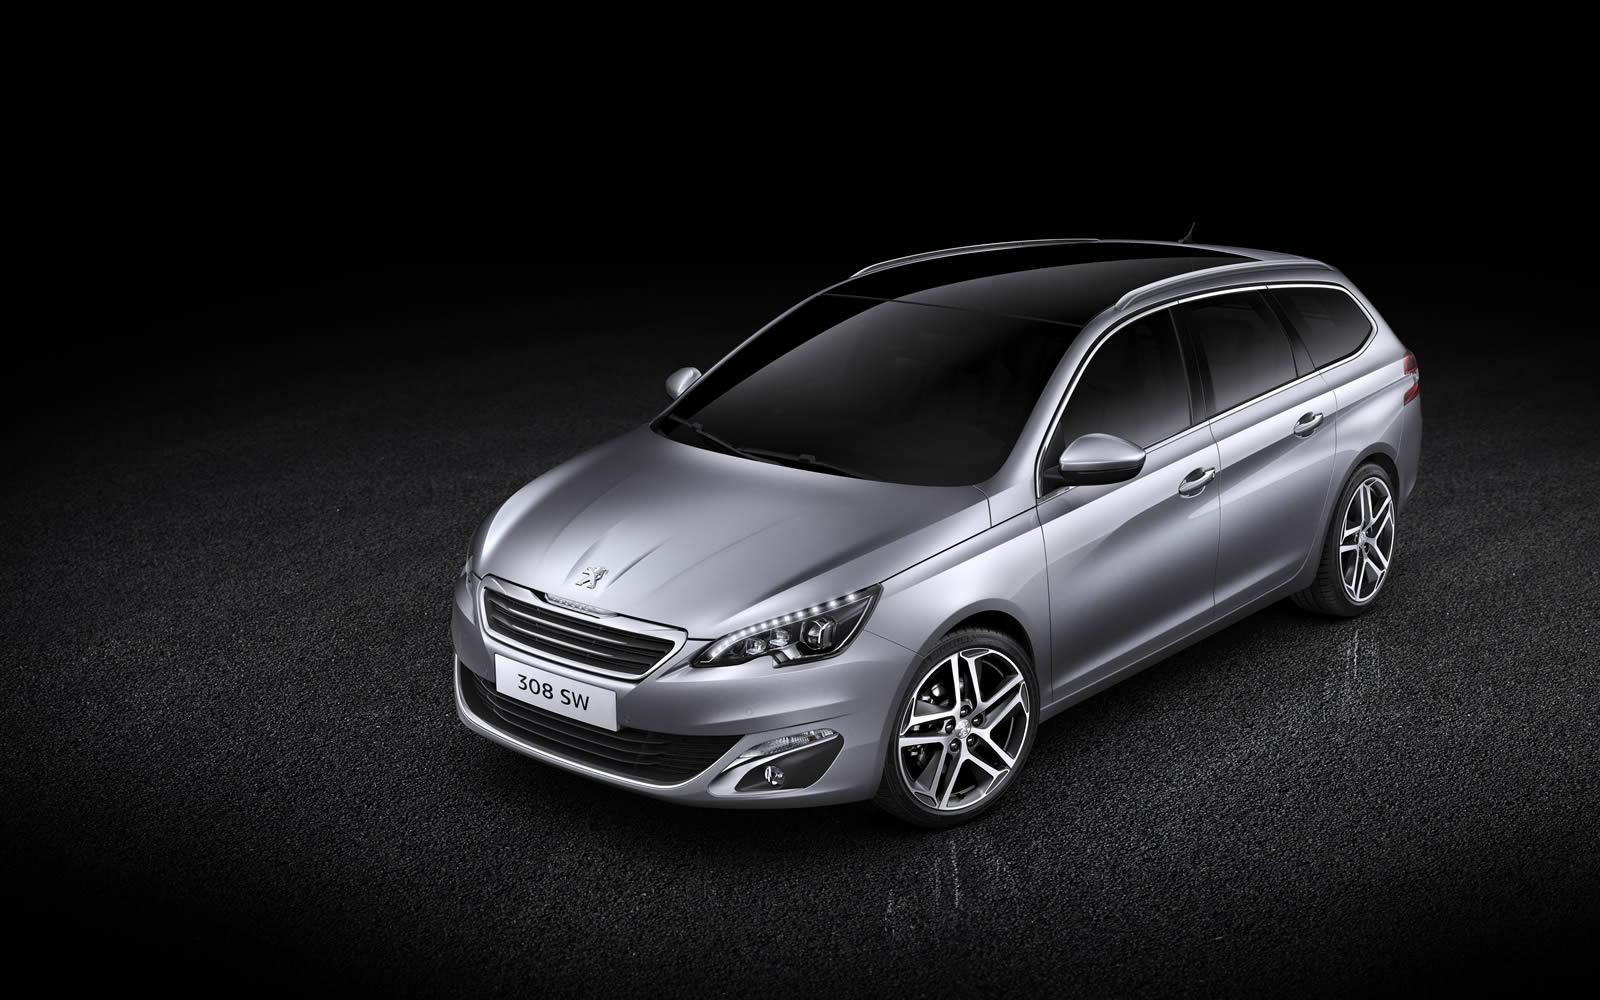 Peugeot 308 Sw Revealed With 610 Liters Of Cargo Space